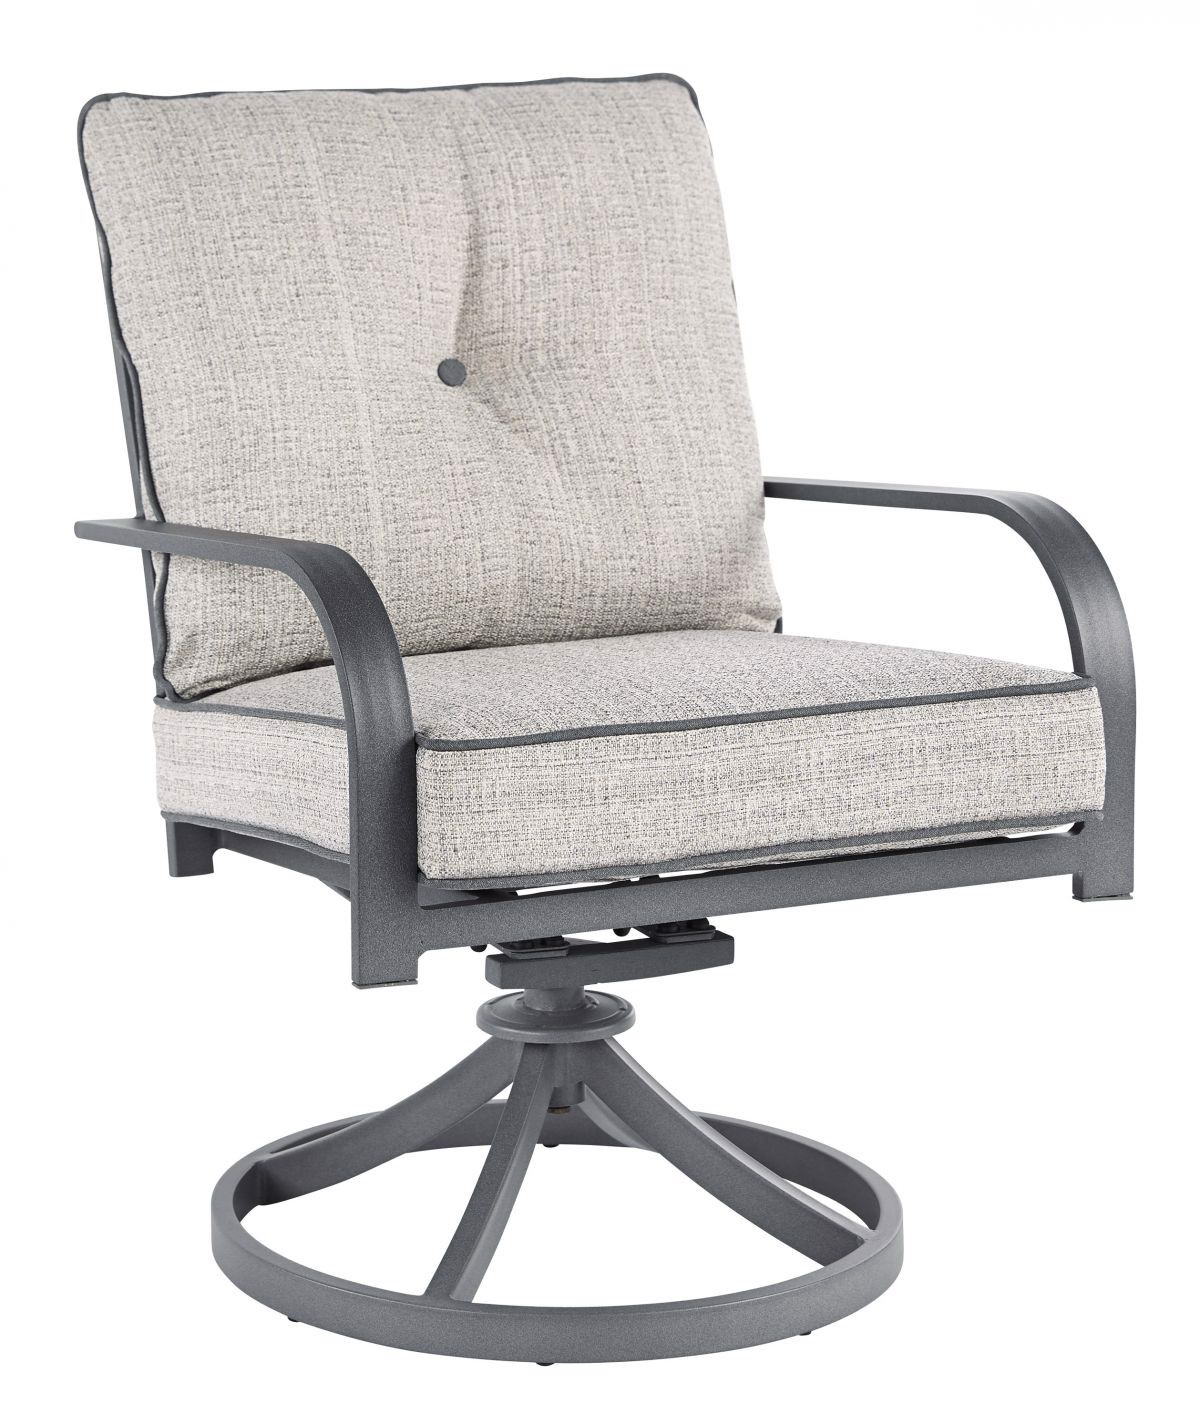 Picture of Donnalee Bay Patio Chair